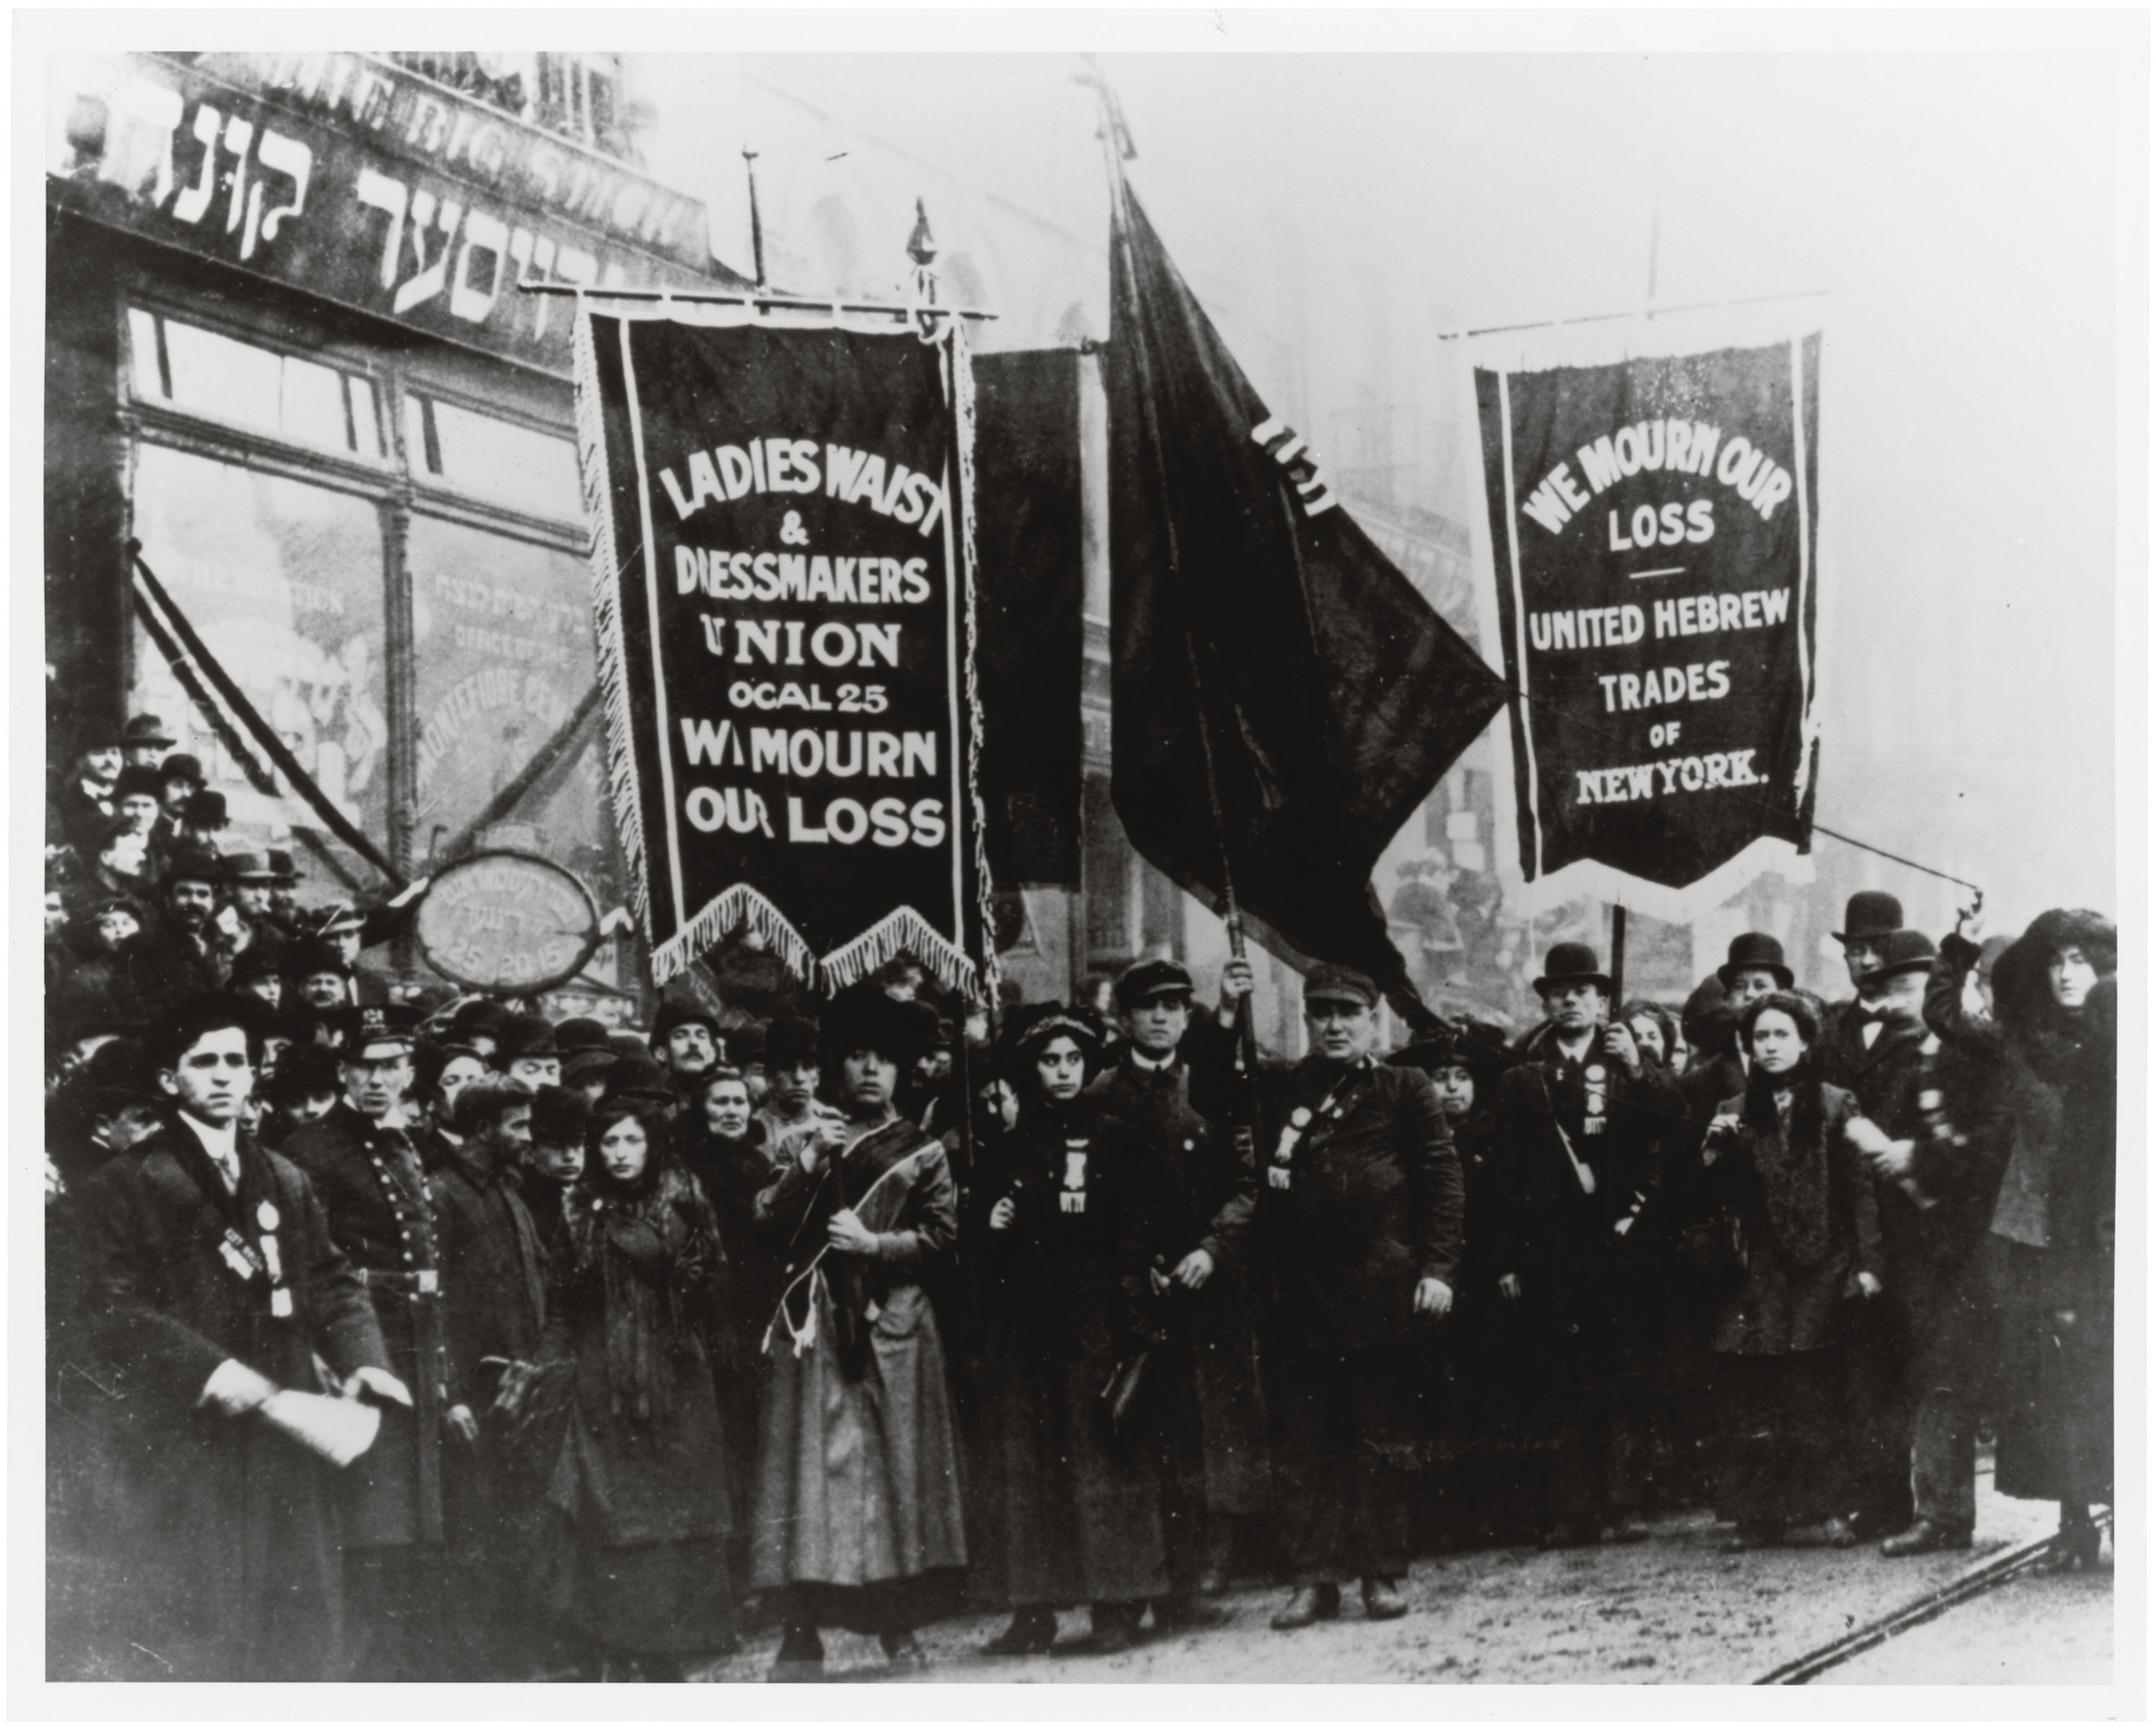 Demonstrators mourn for the deaths of victims of the Triangle Shirtwaist Factory fire, New York, New York, 1911. (Photo by PhotoQuest/Getty Images)